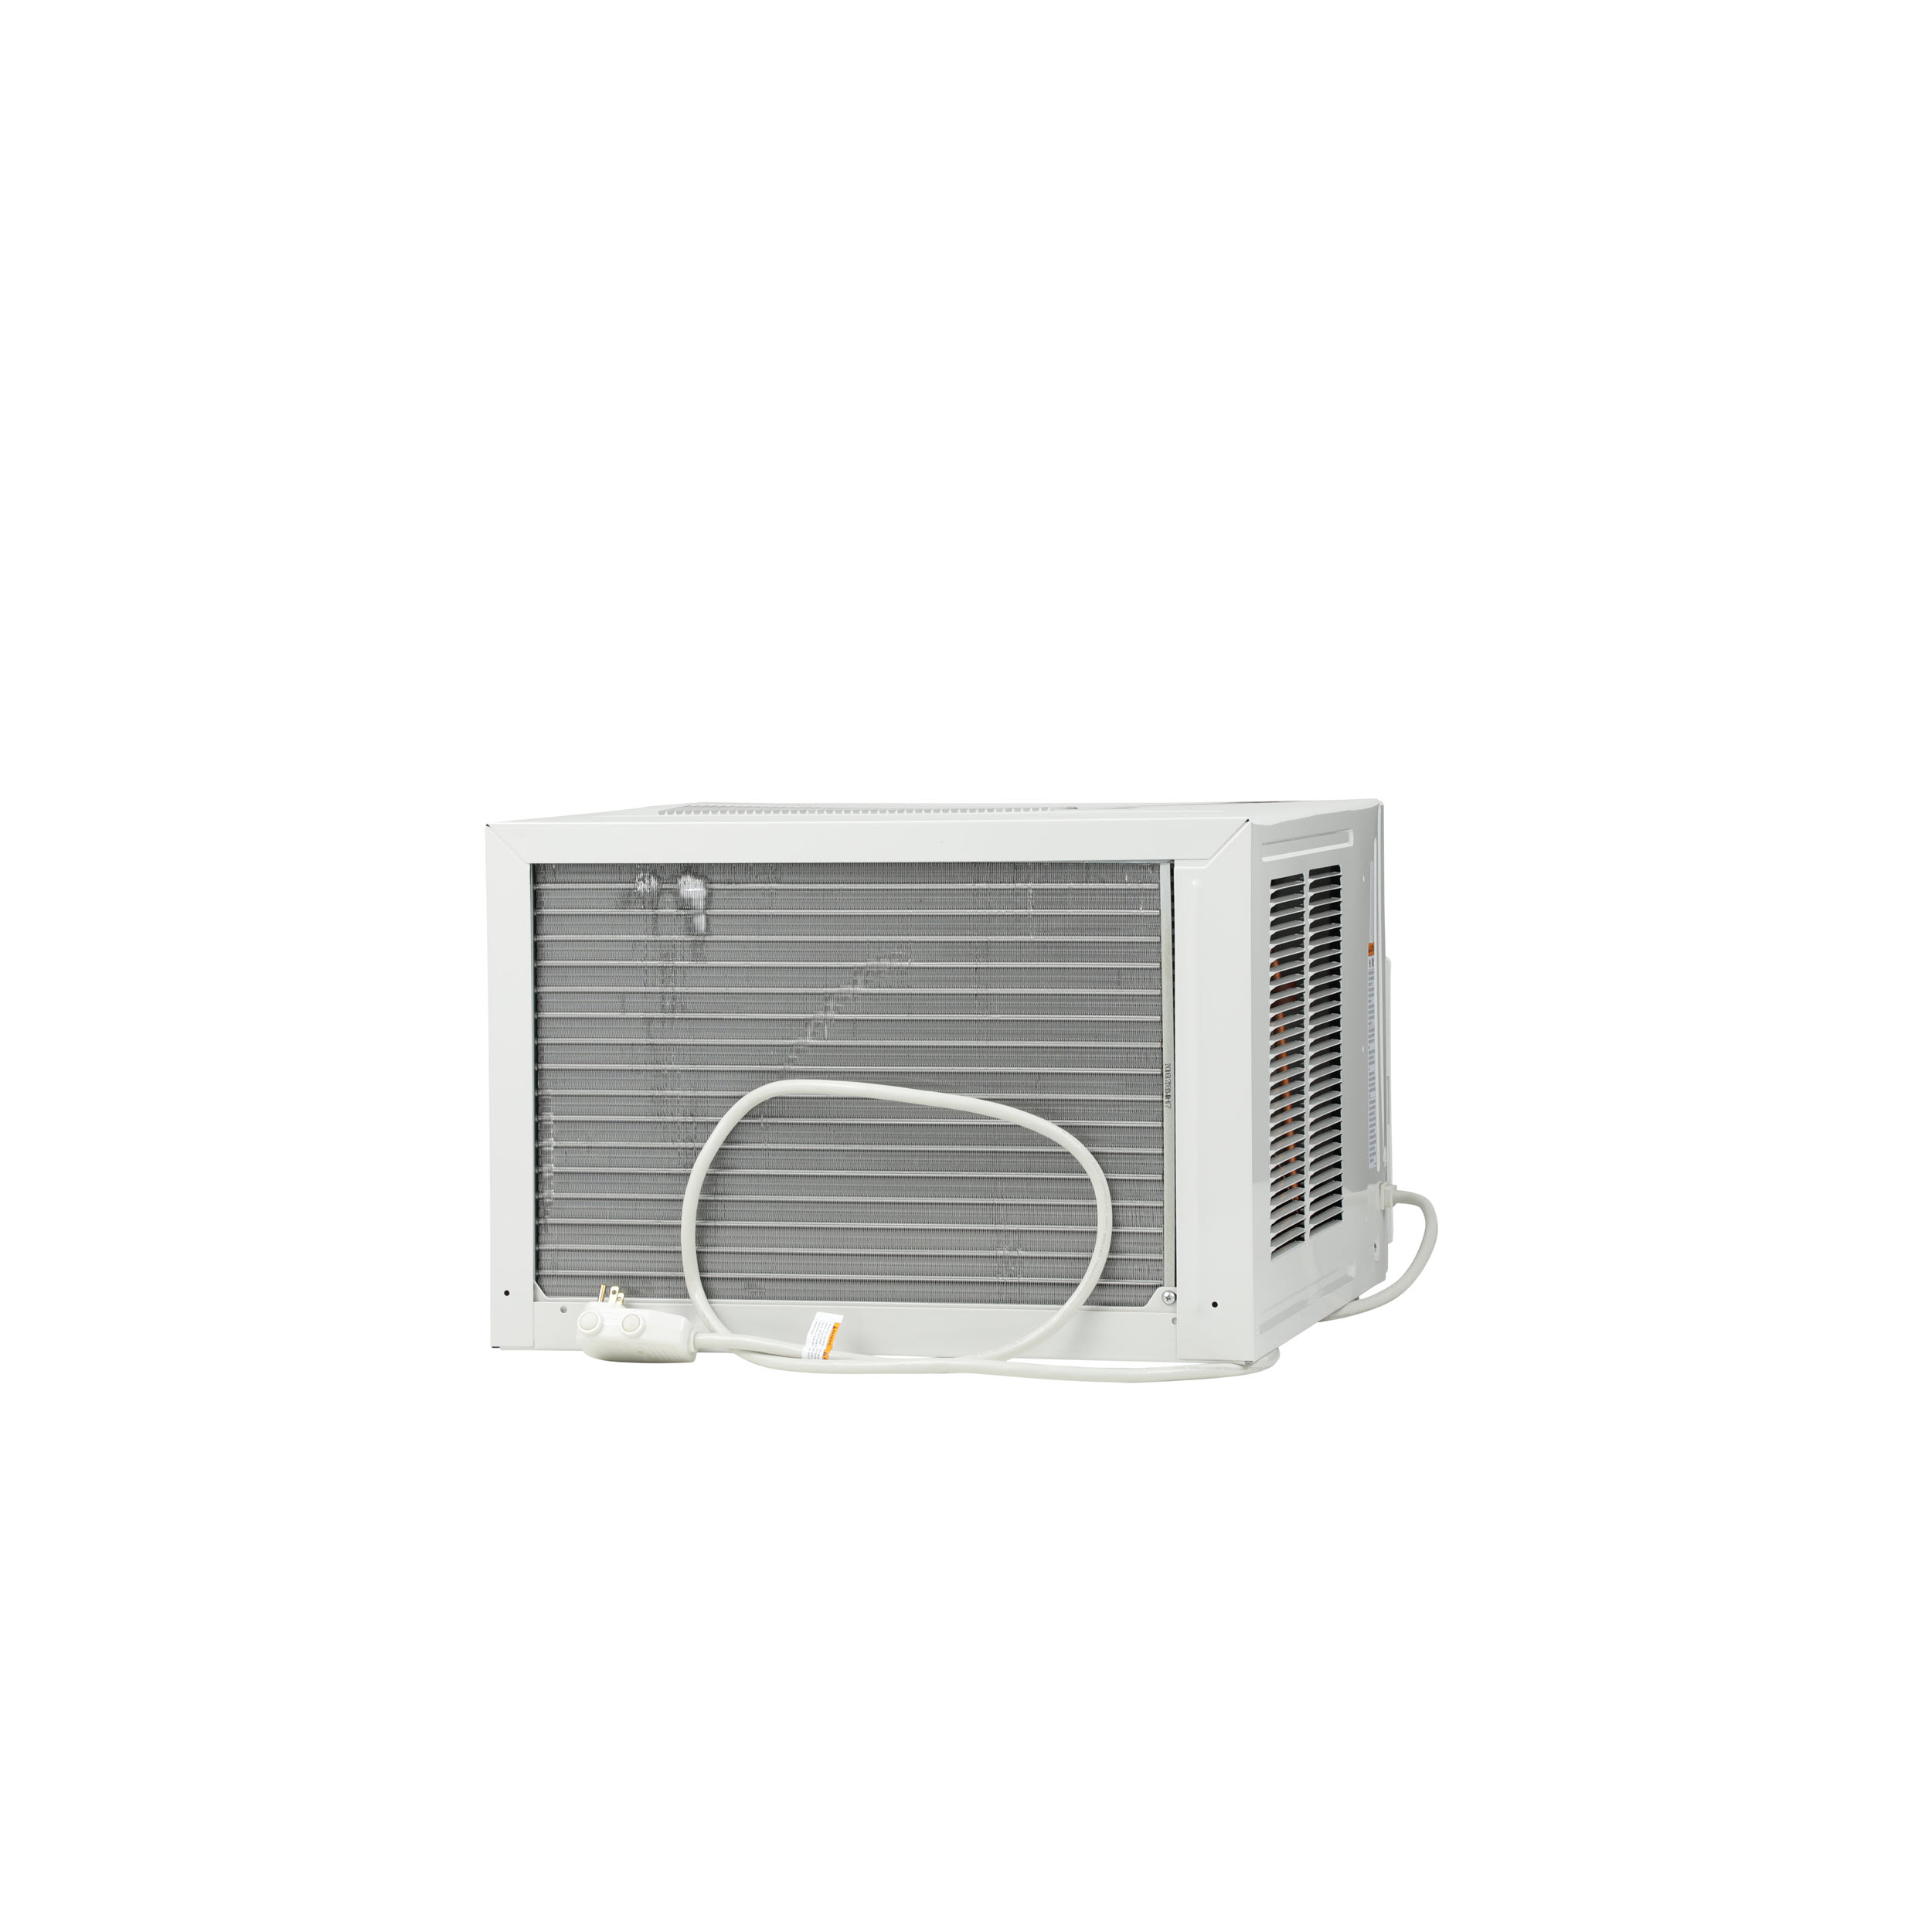 Model: AEE12DT | GE GE® 230 Volt Electronic Heat/Cool Room Air Conditioner